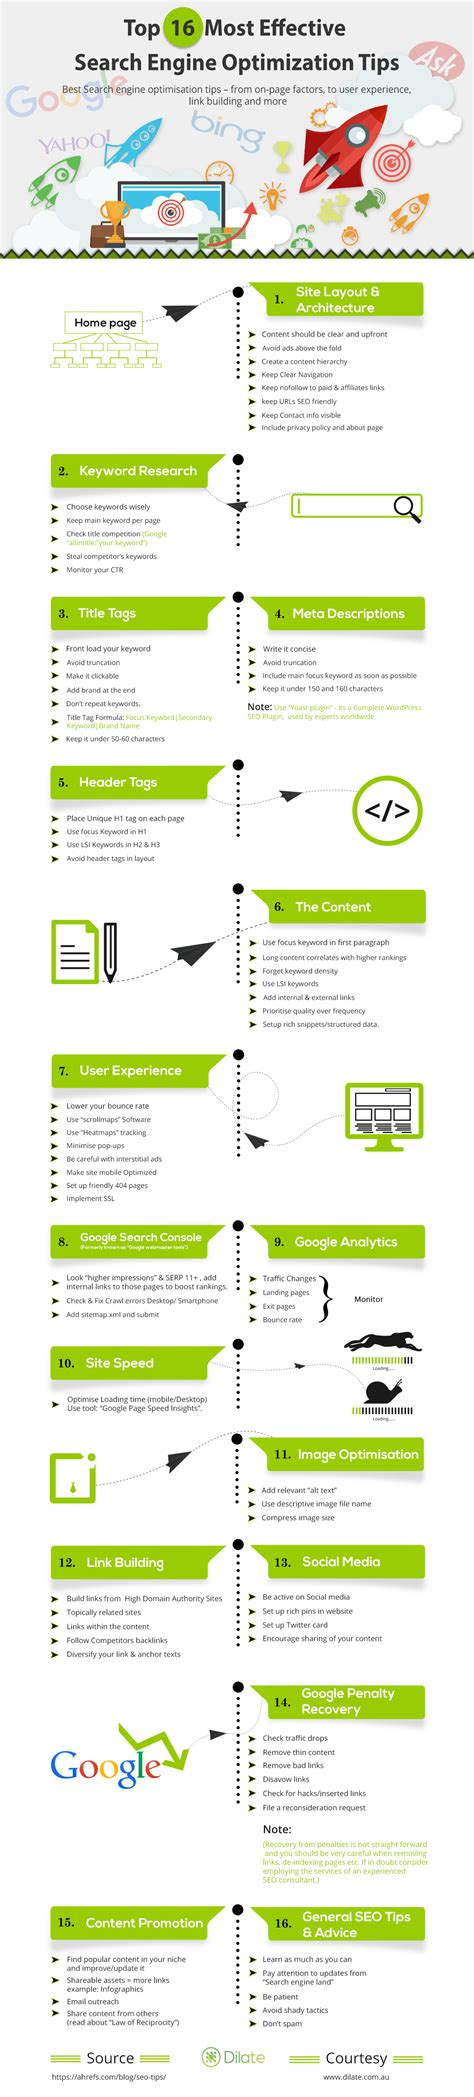 Top Search Engine Optimization by Top 16 Search Engine Optimization Tips Infographic